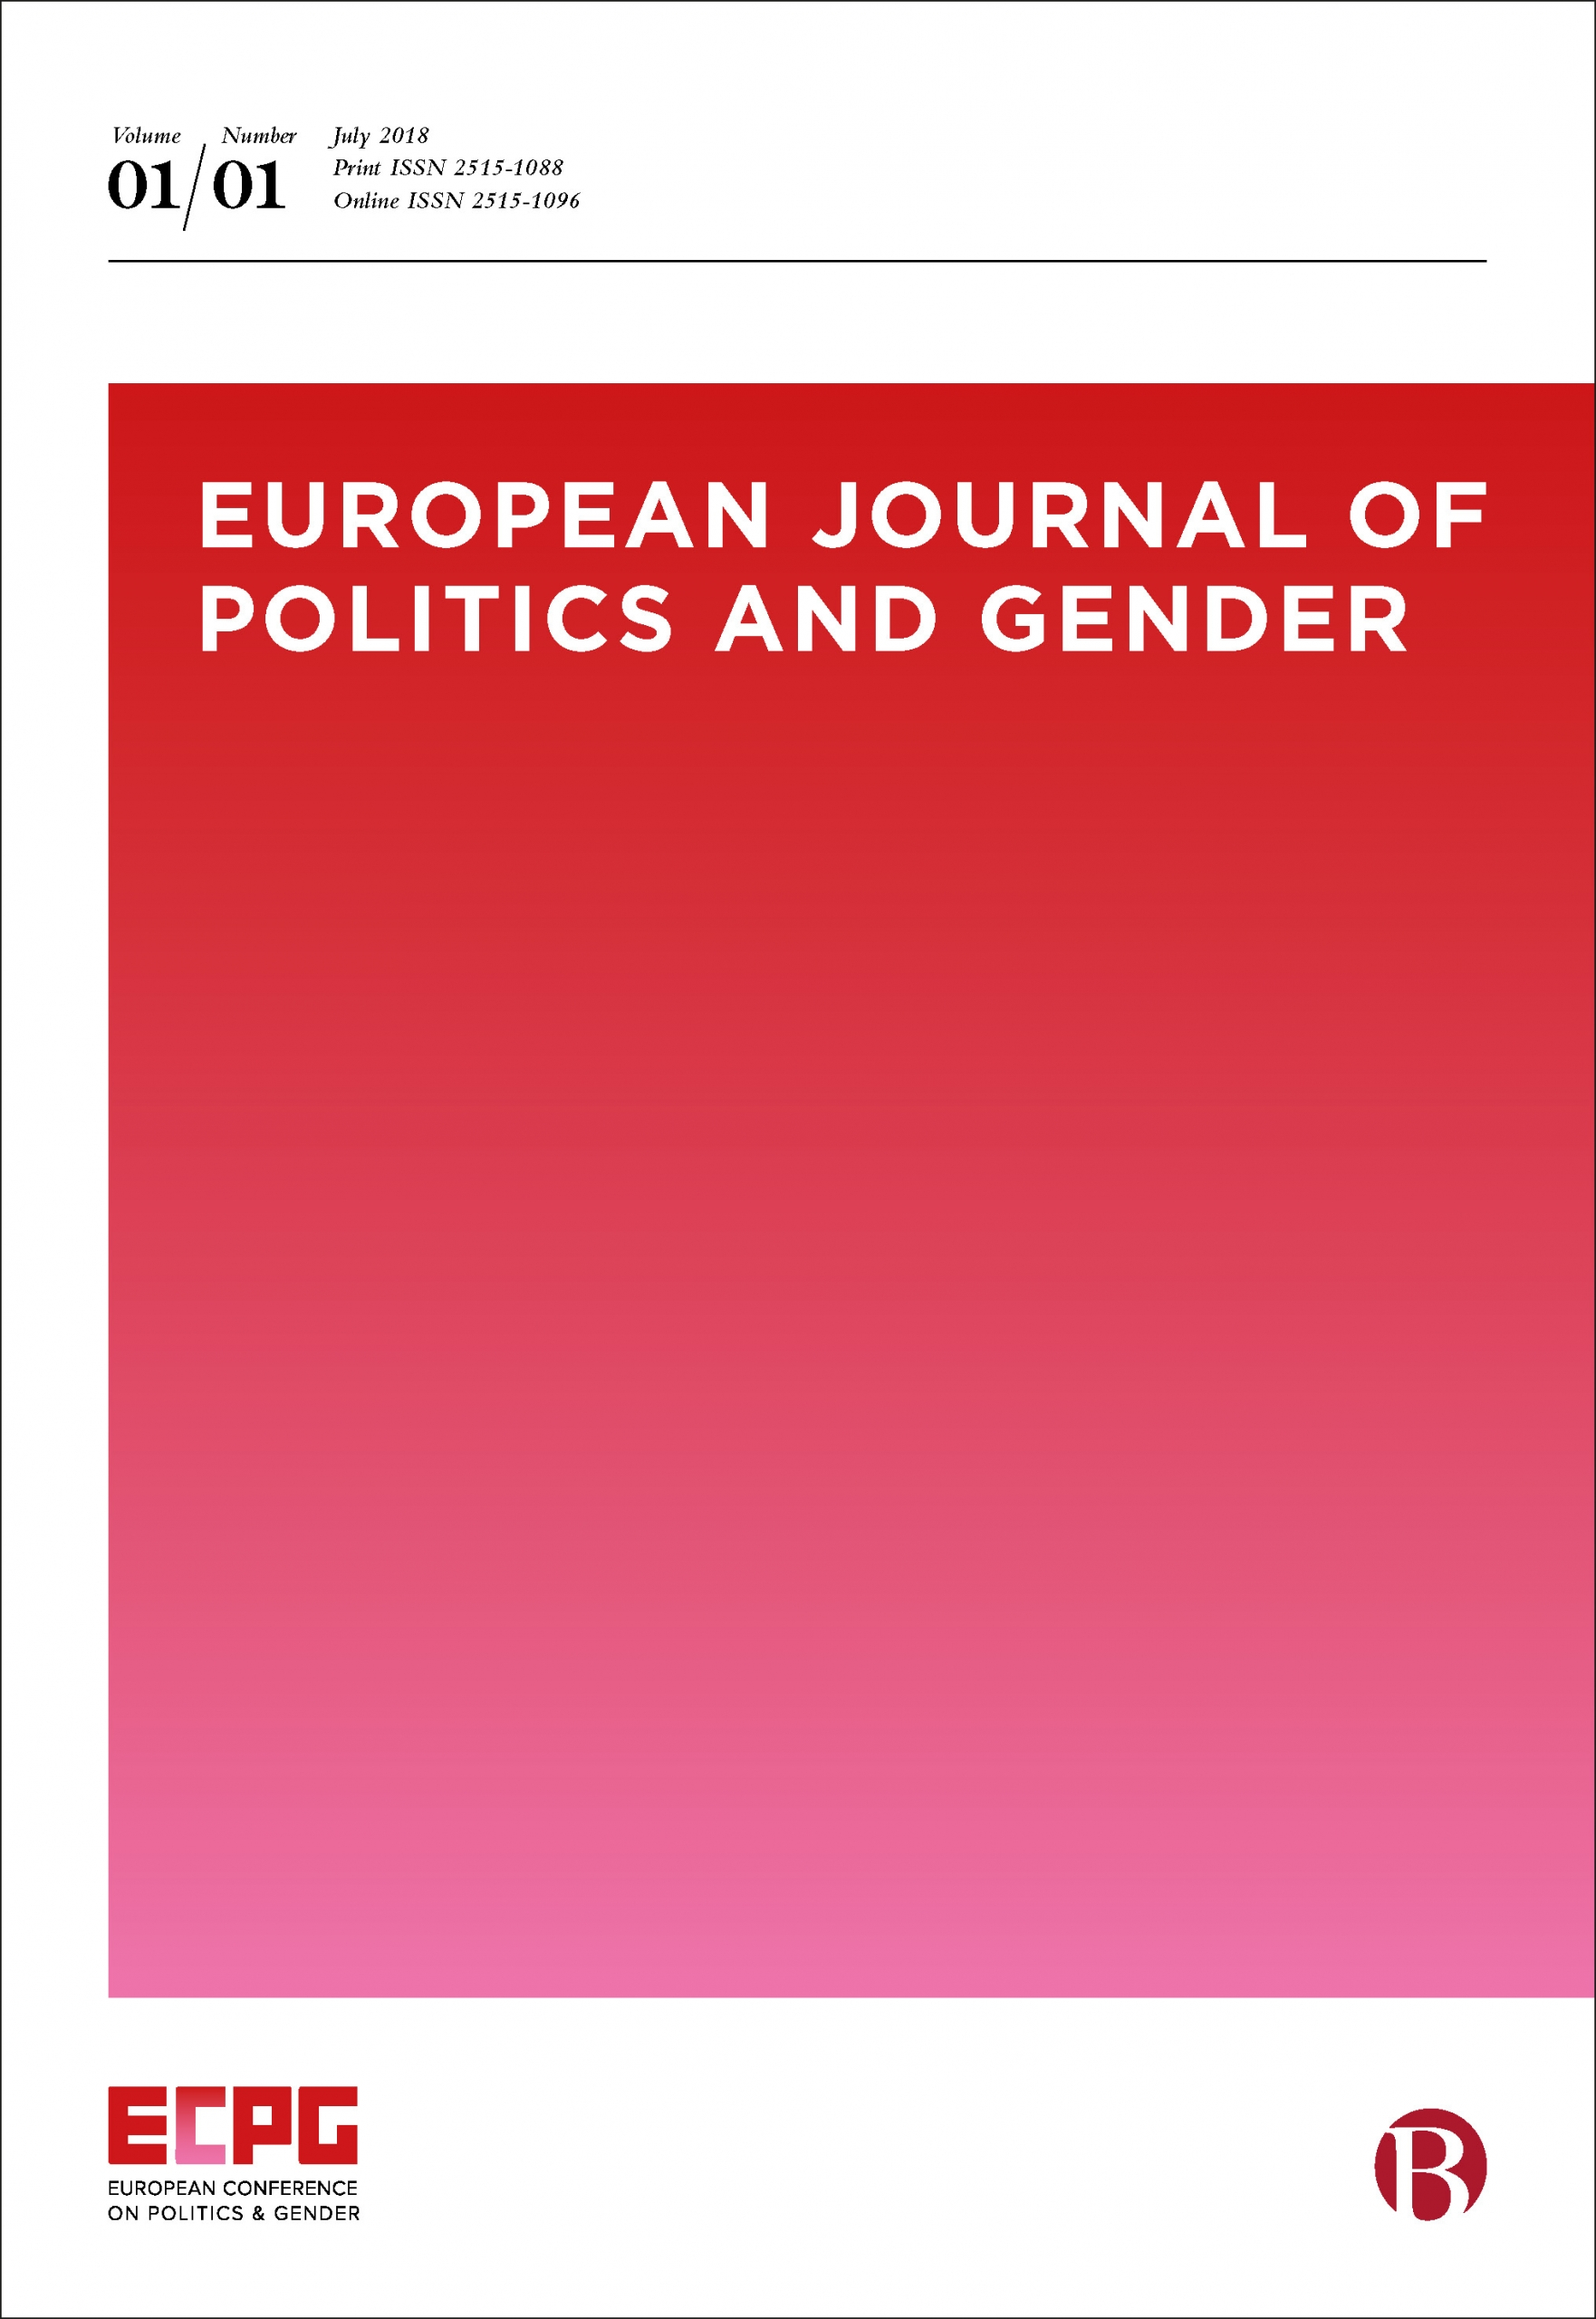 Cover of the European Journal of Politics and Gender